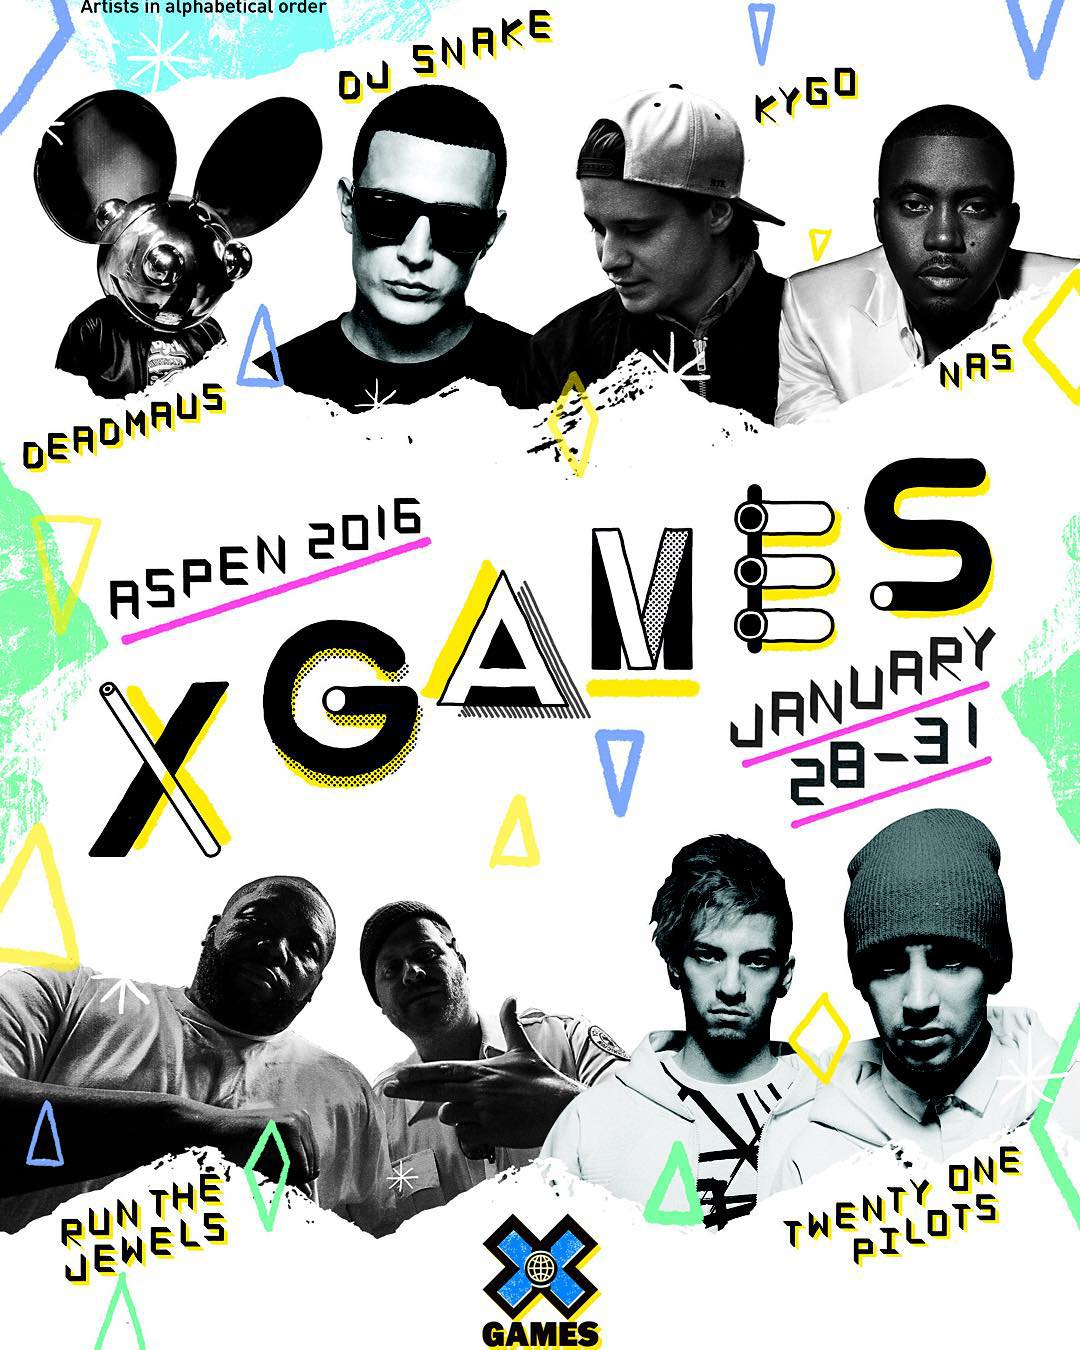 The 2016 #XGames Aspen music lineup is loaded!  Tickets are on sale now at XGames.com.